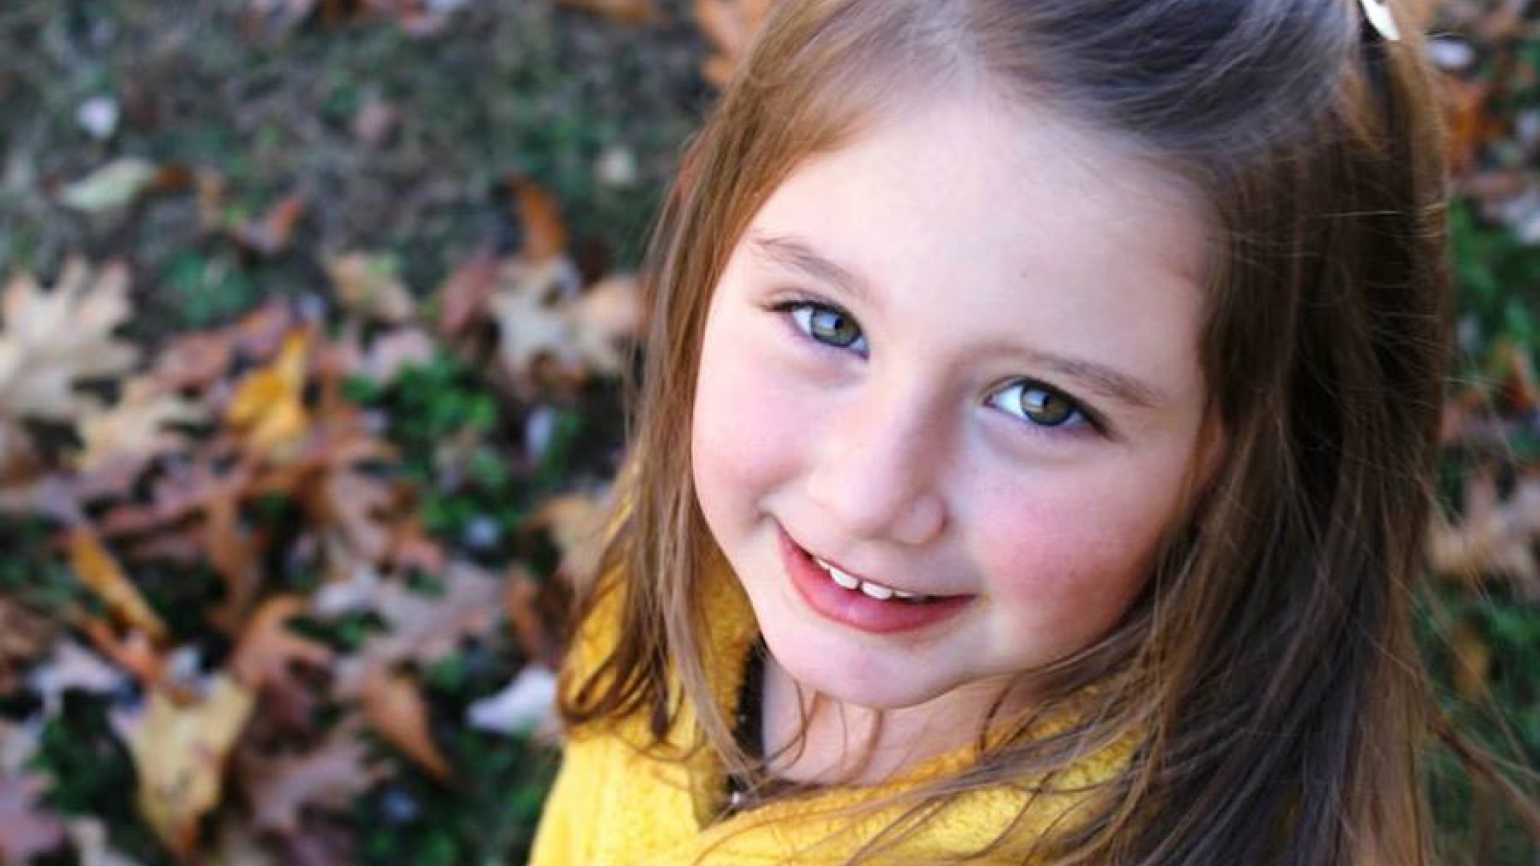 Michelle's granddaughter, Anna, loves to encourage others to come to church.